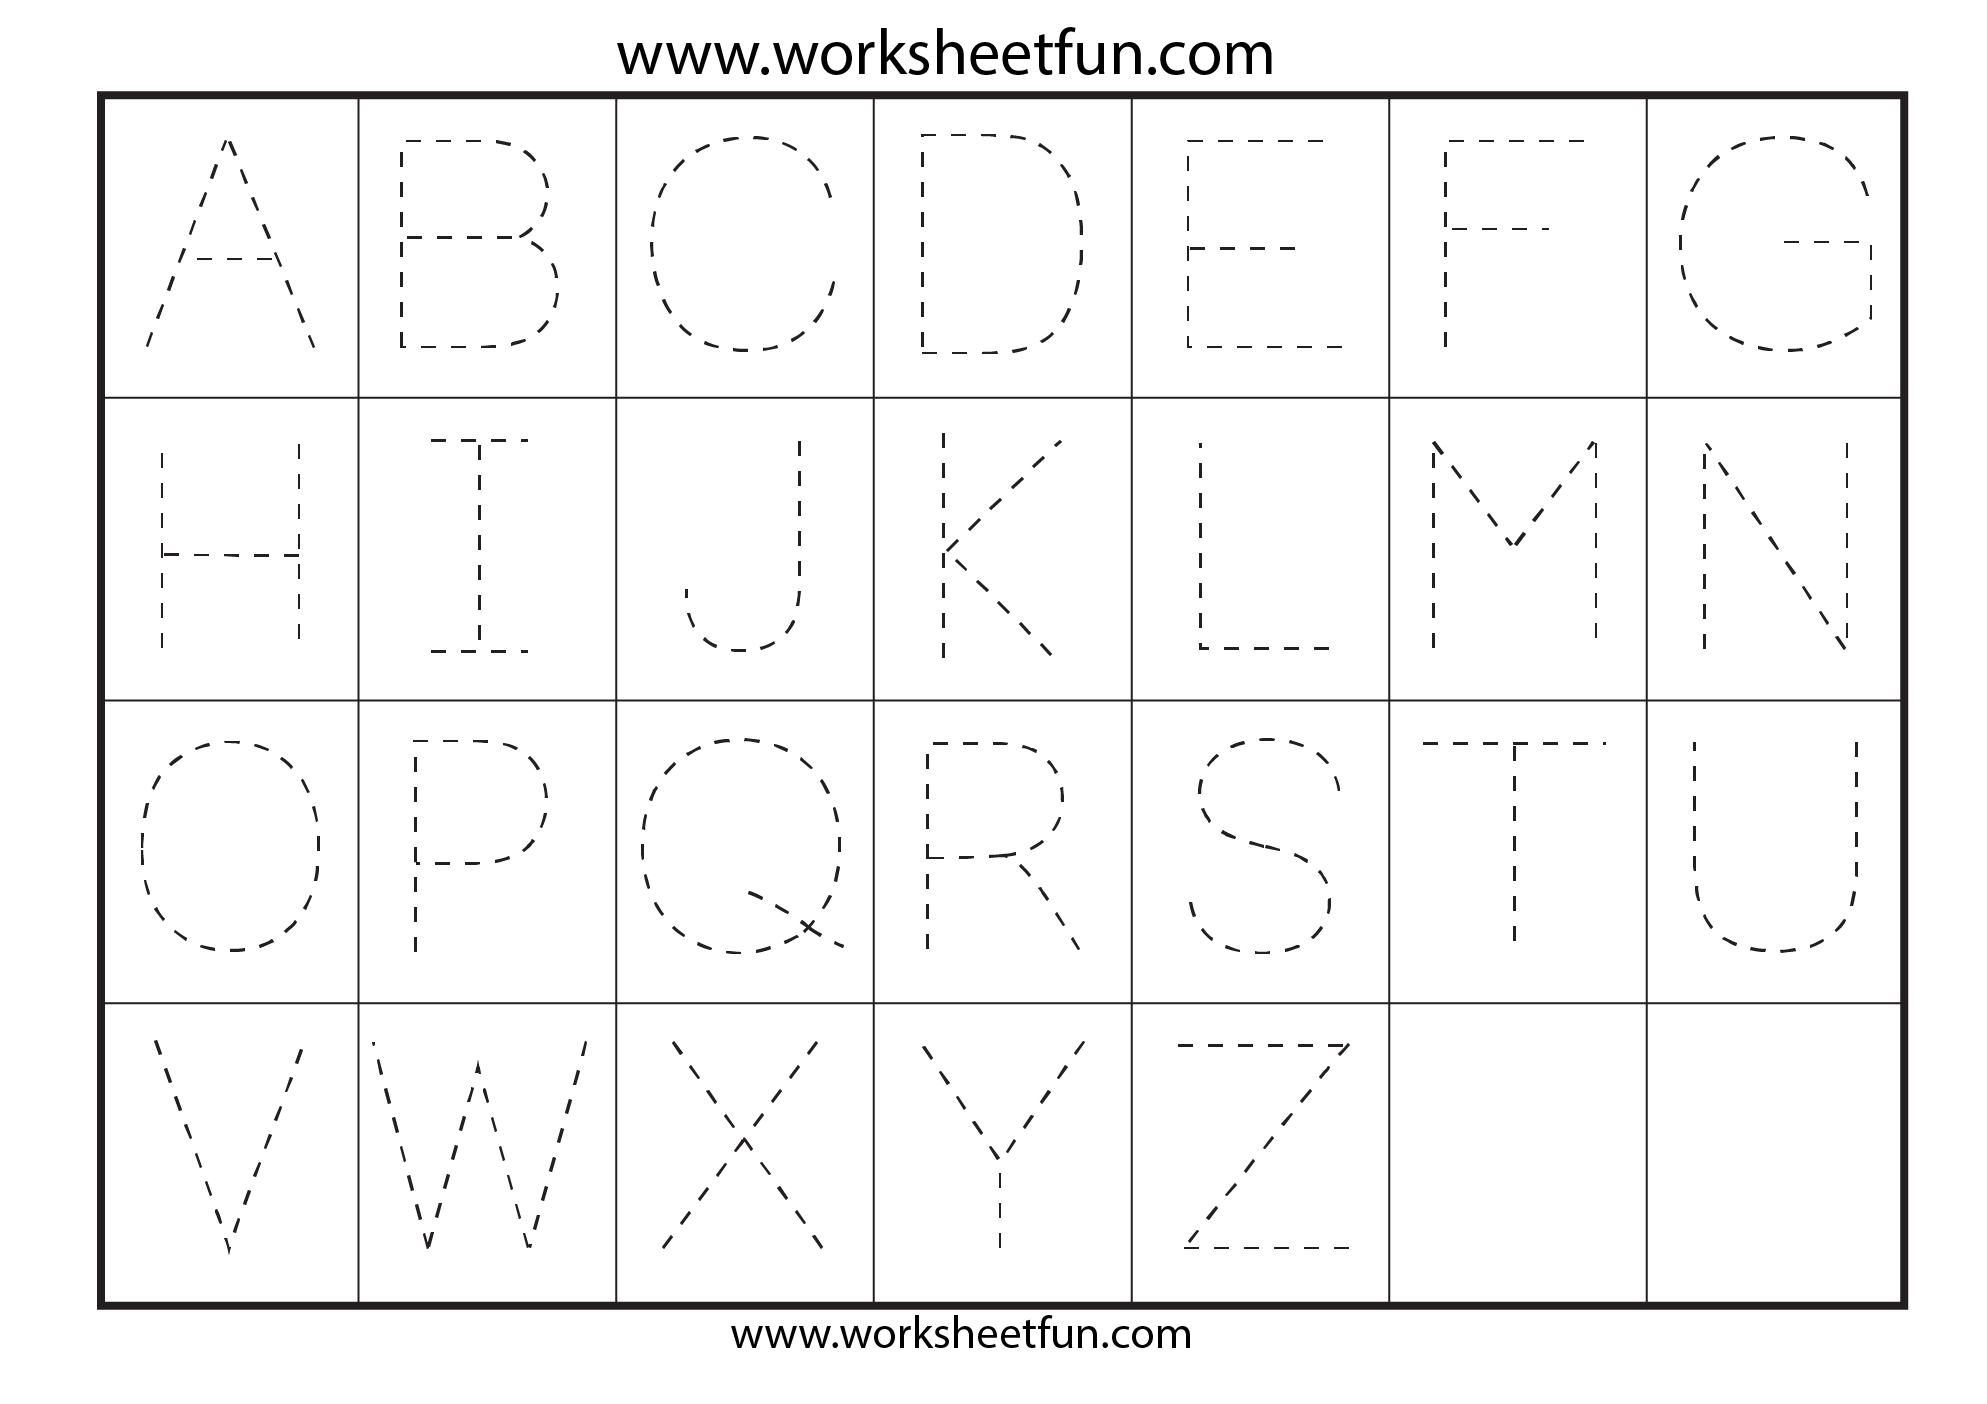 Abc homework sheets – Abc Practice Worksheets for Kindergarten